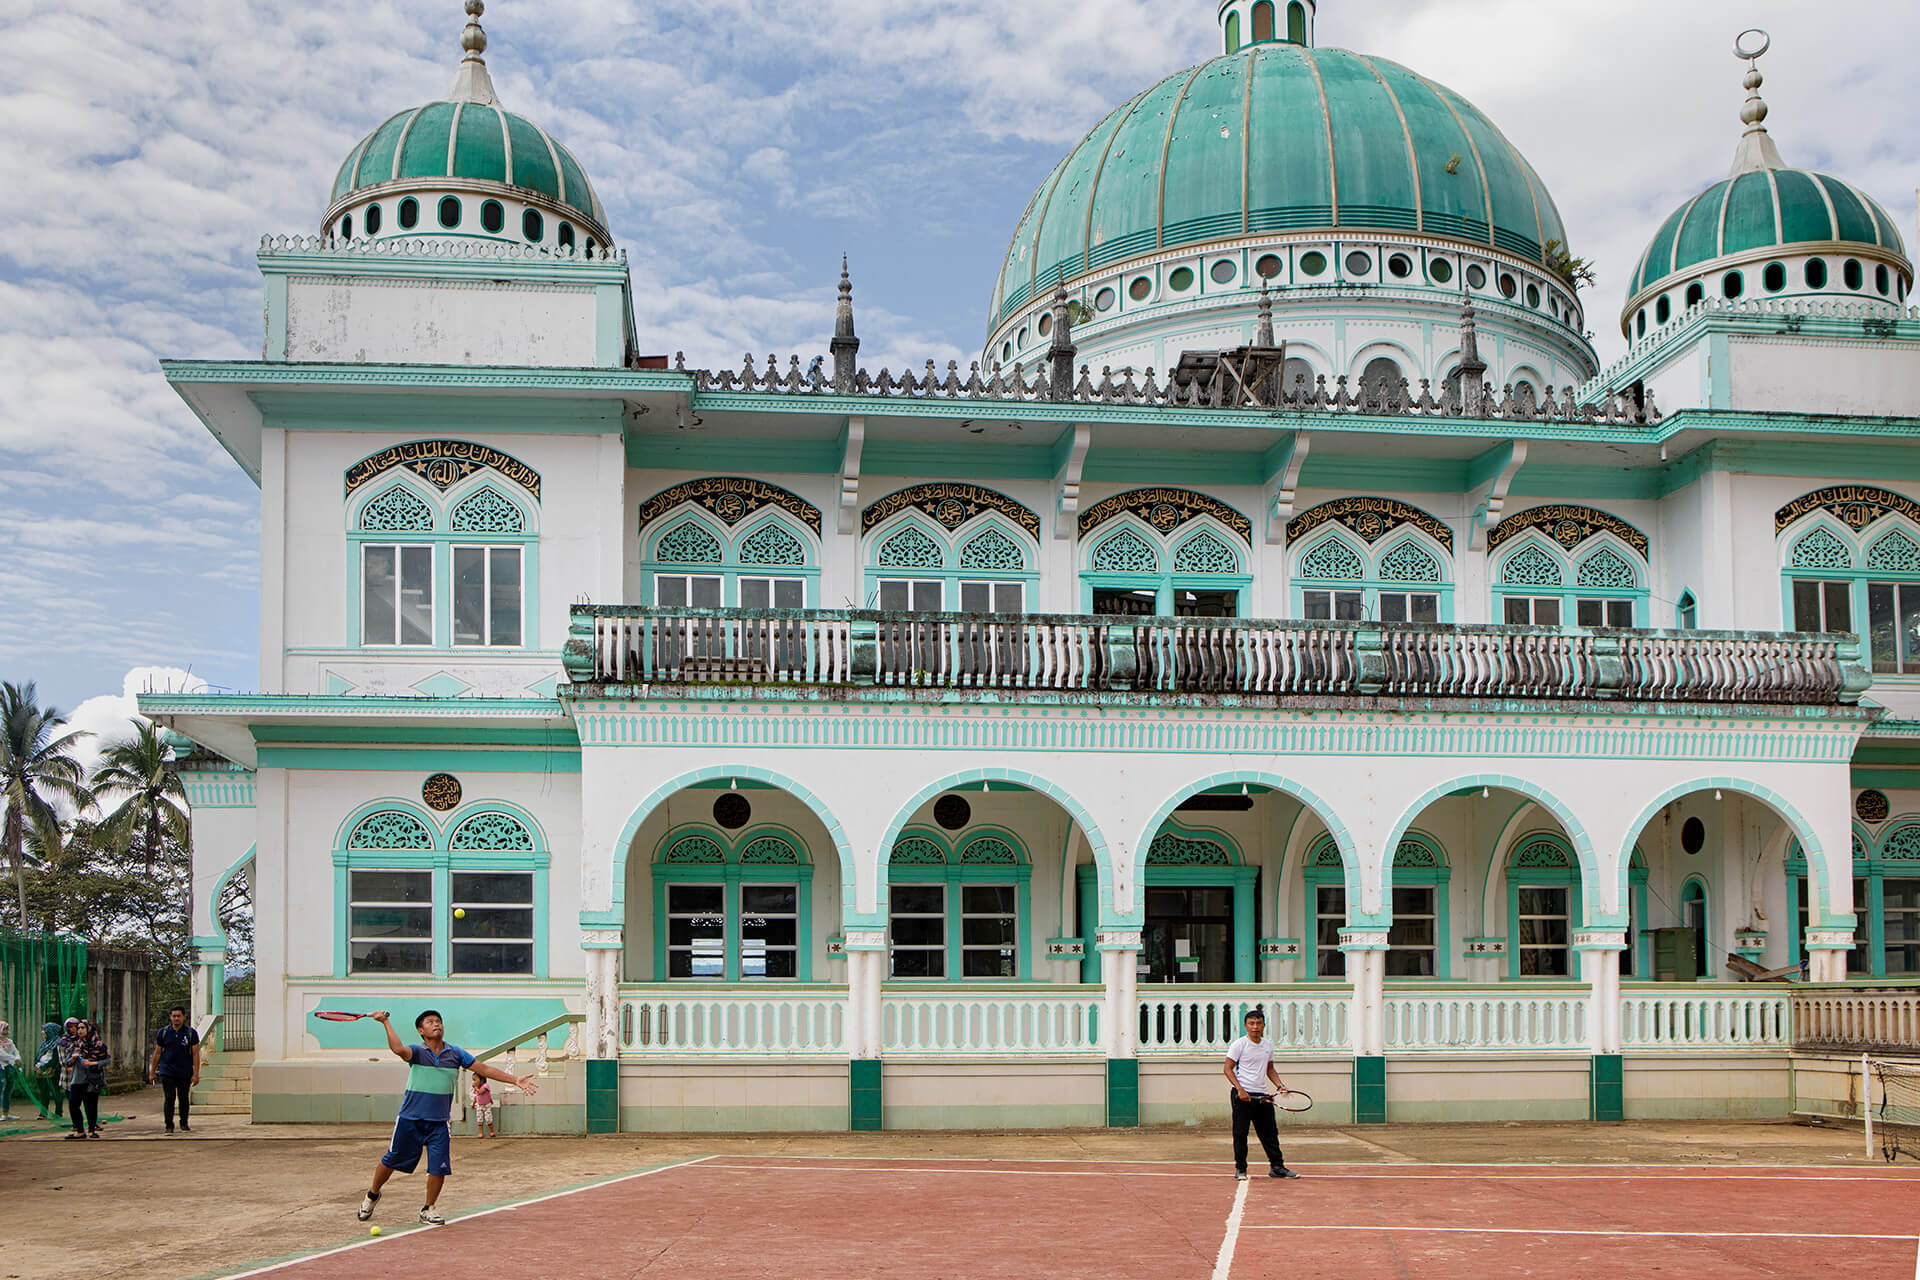 The Dalliman Central Masjid was built by Tugaya's own craftsmen.